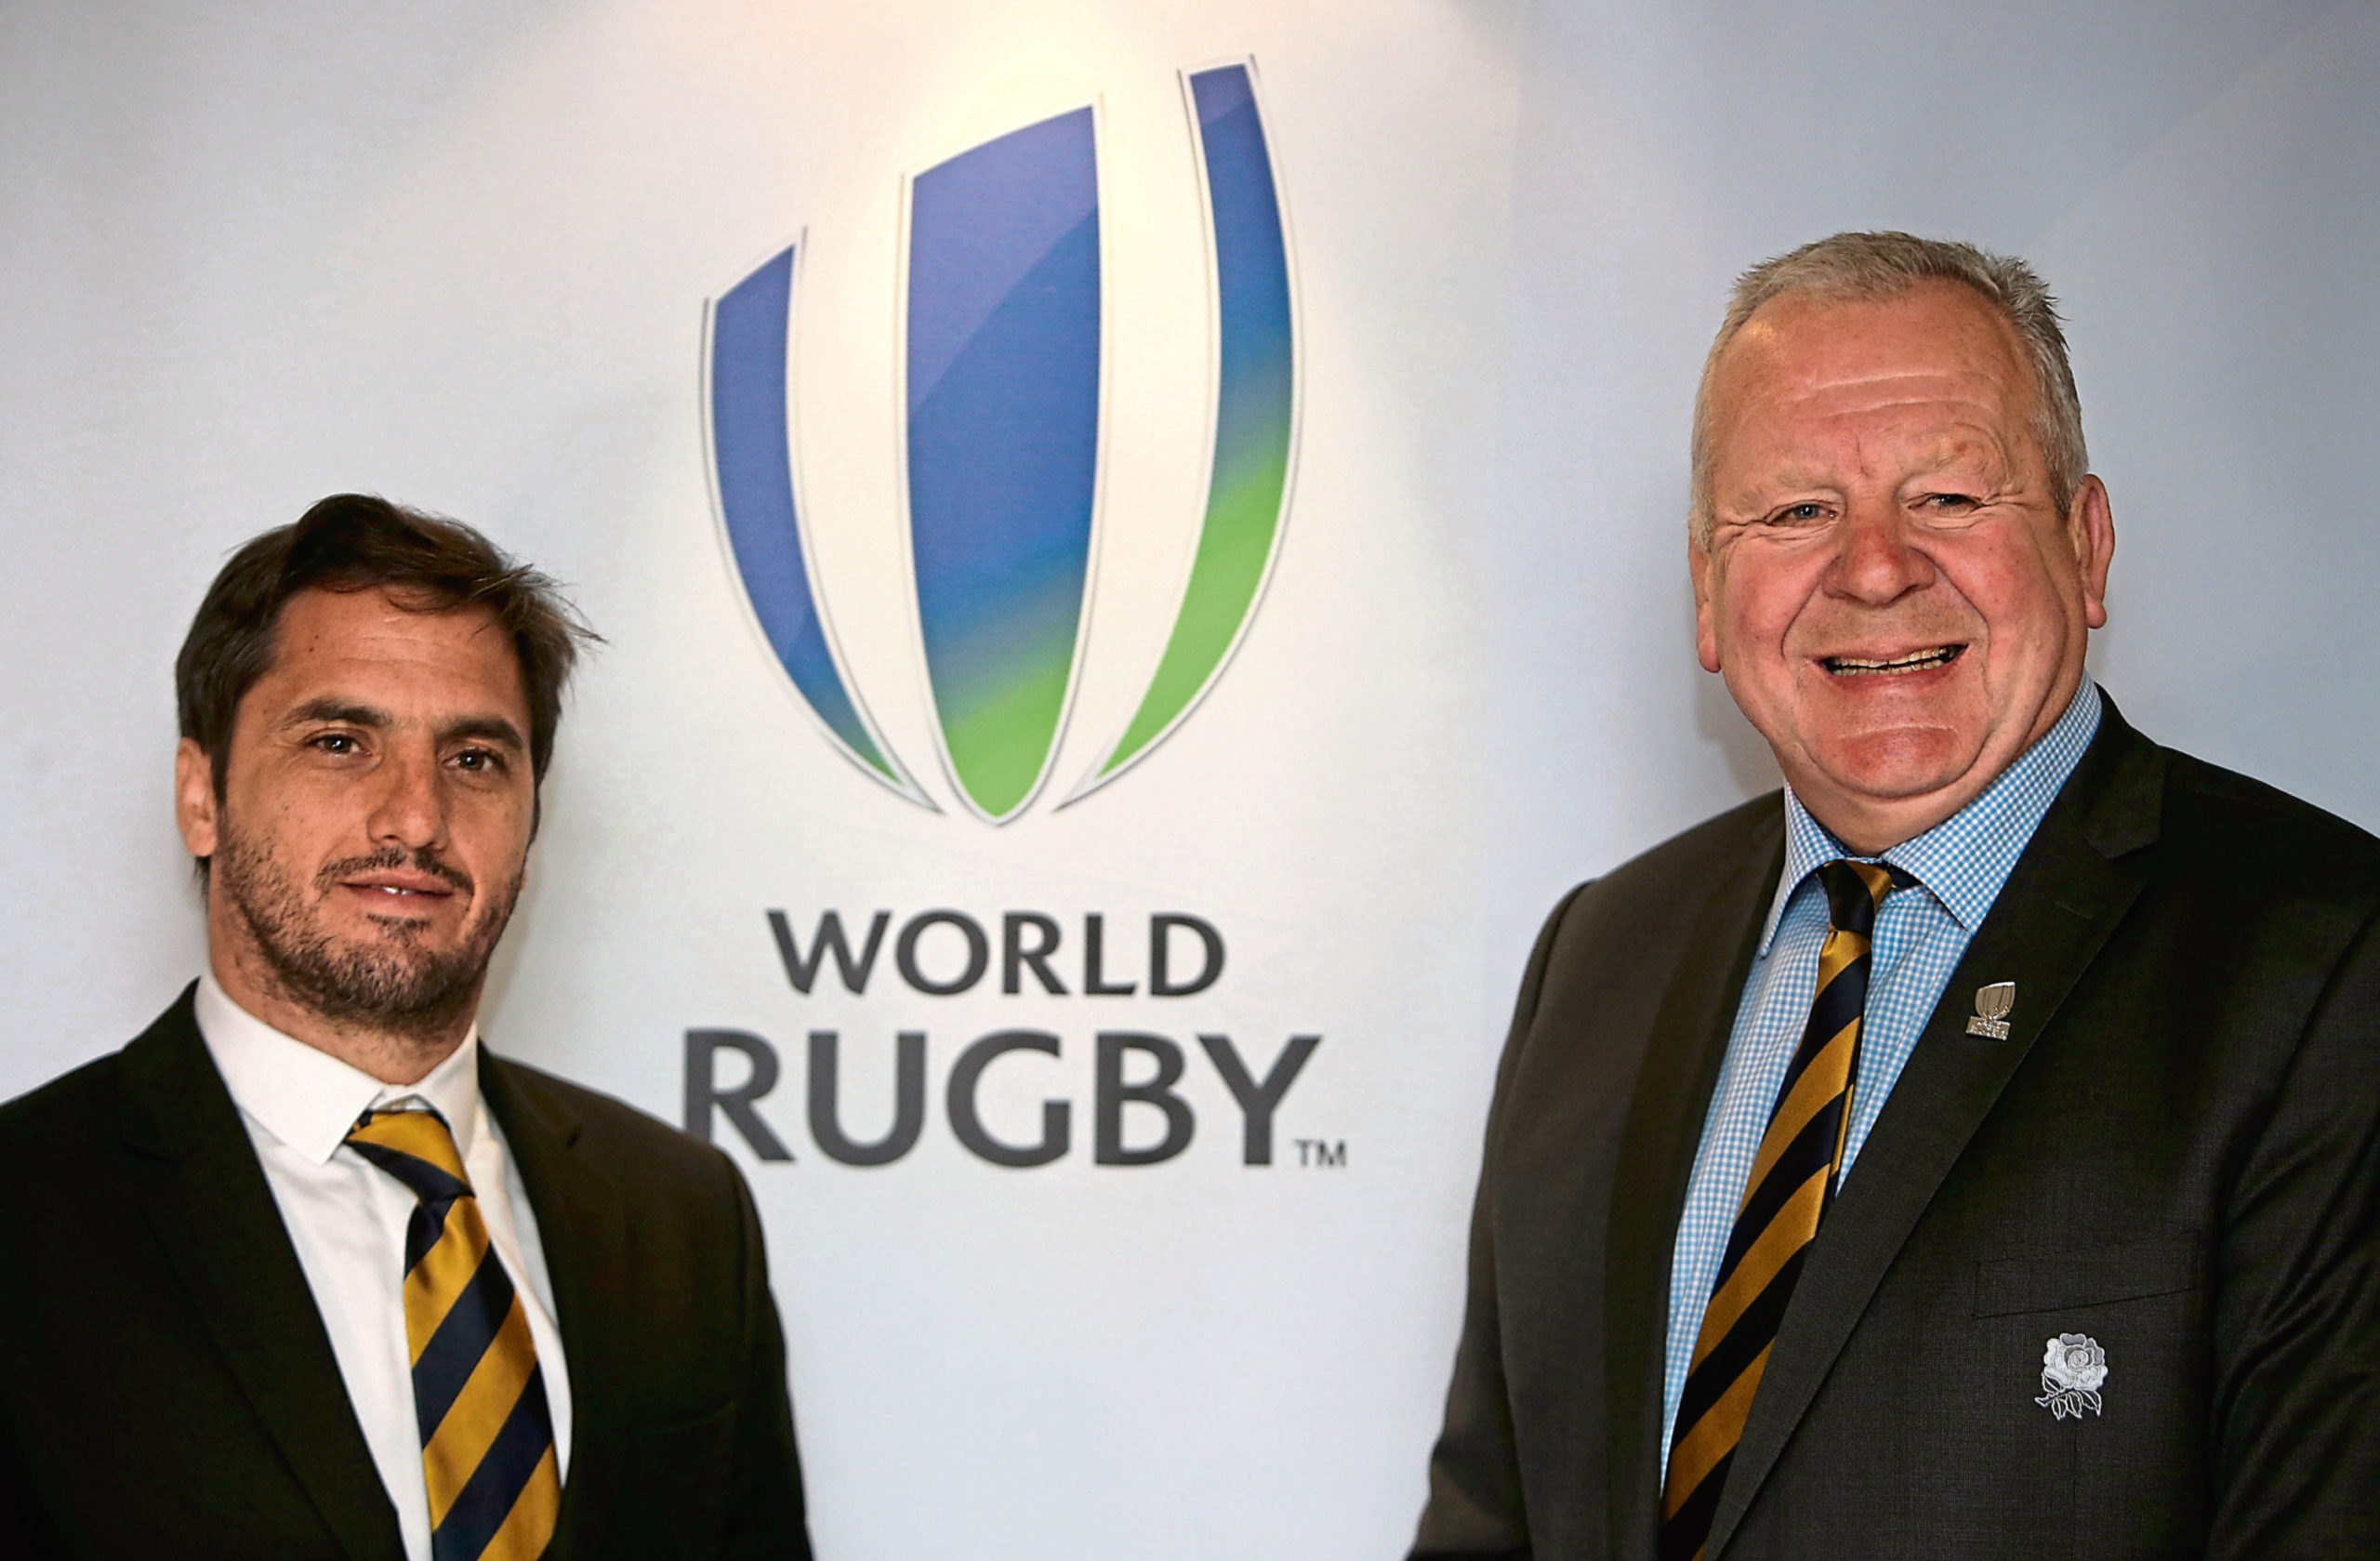 File photo dated 11-05-2016 of chairman of World Rugby, Bill Beaumont with vice-chairman Agustin Pichot (left). PA Photo. Issue date: Sunday April 12, 2020. Sir Bill Beaumont faces competition in his bid to be re-elected as World Rugby chairman after vice-chairman Agustin Pichot launched his campaign. See PA story RUGBYU World Rugby. Photo credit should read Brian Lawless/PA Wire.